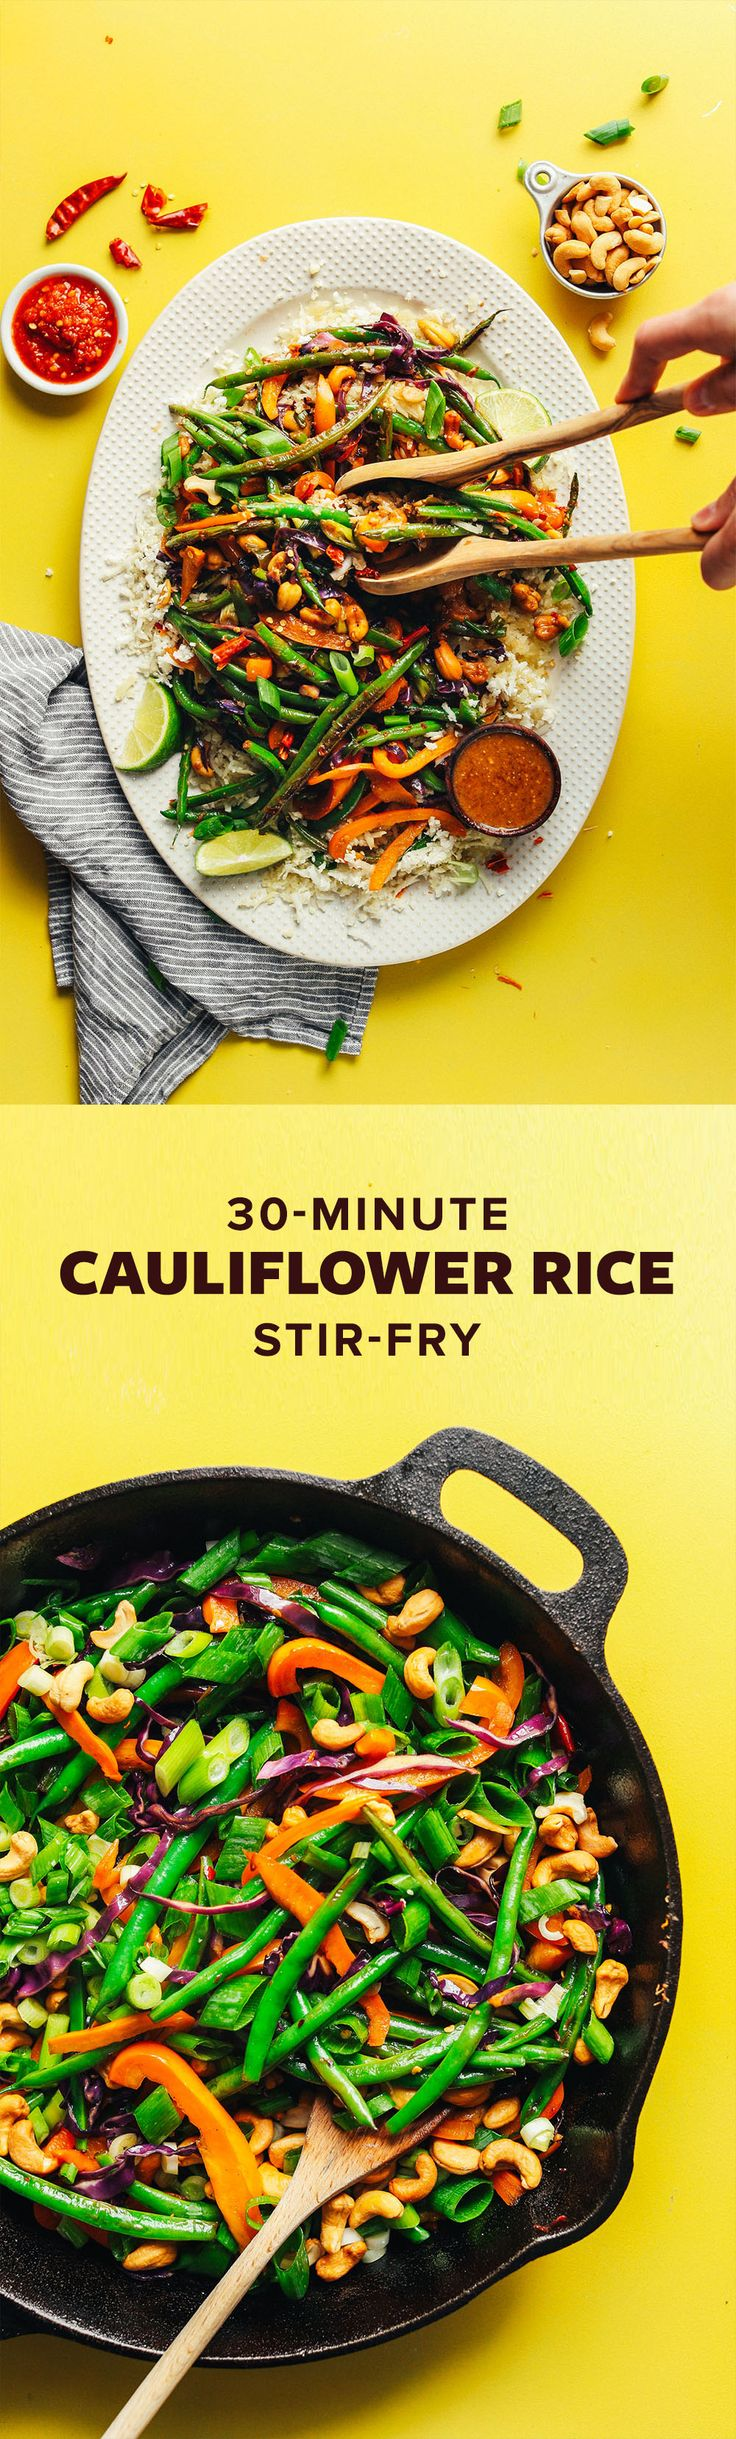 Weeknight Cauliflower Rice Stir Fry with Veggies + Cashews! 30 minutes, SO healthy + satisfying